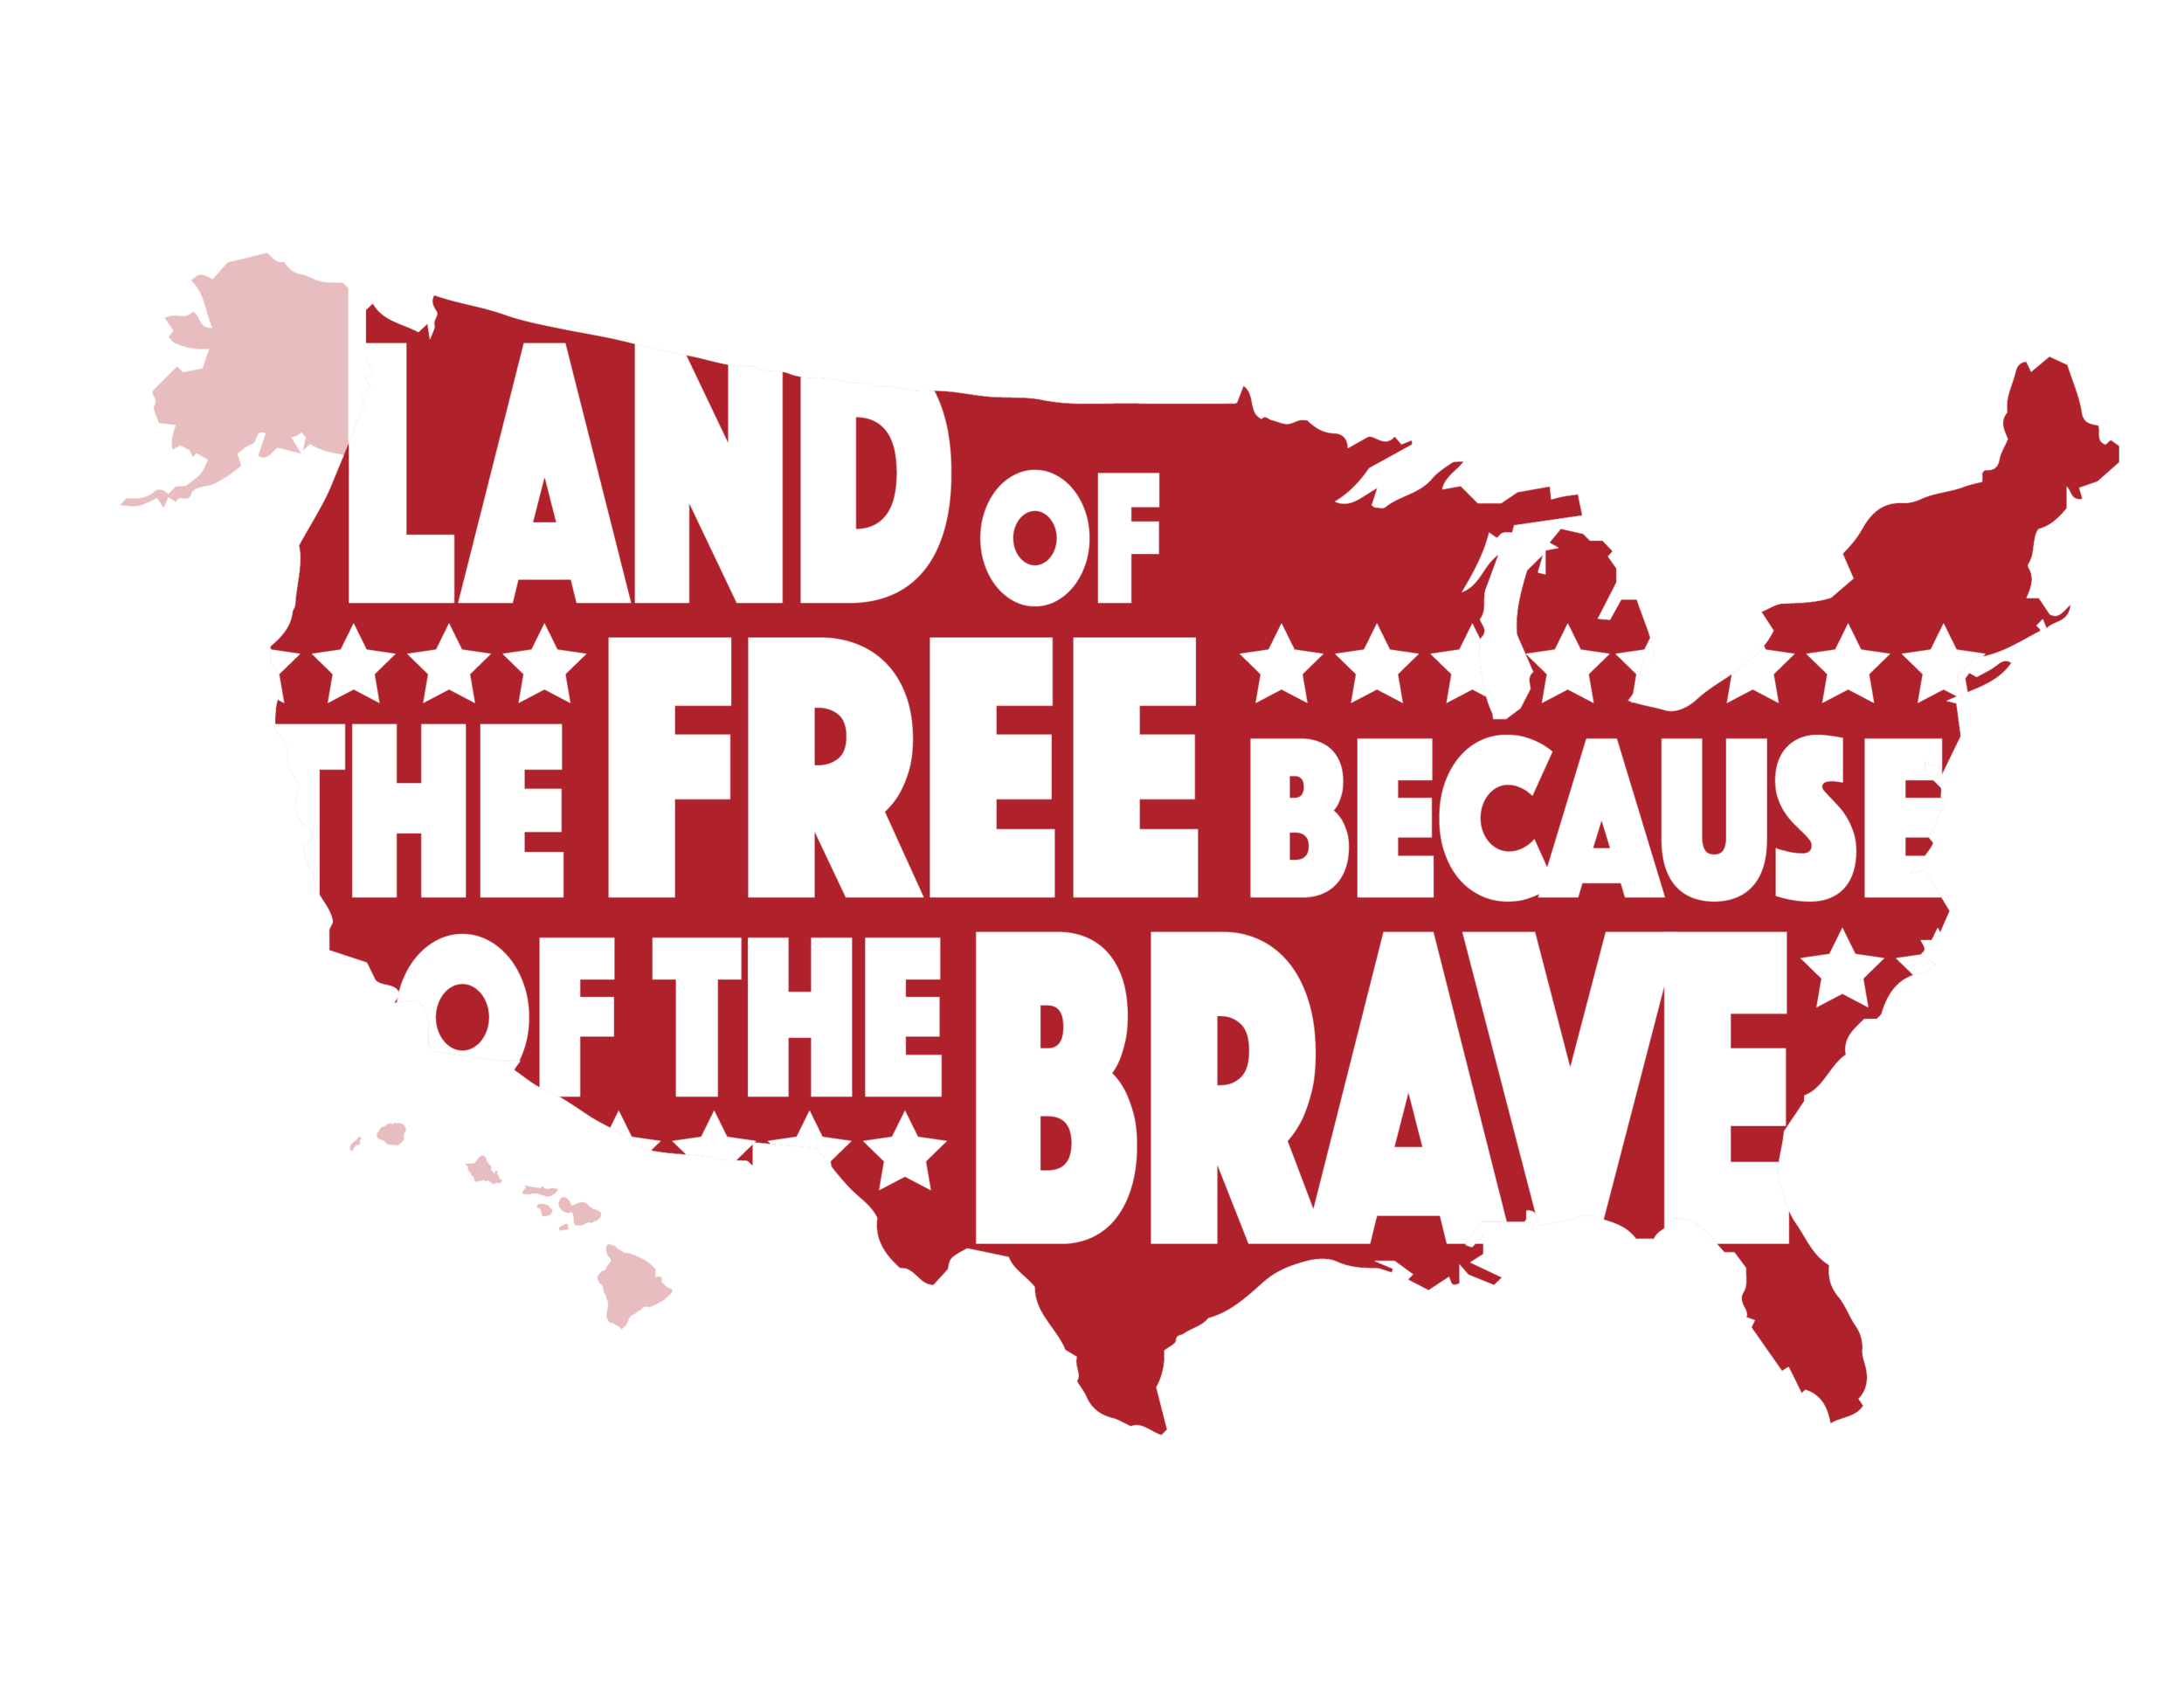 Land of the Free printable artwork from Painted Orange.